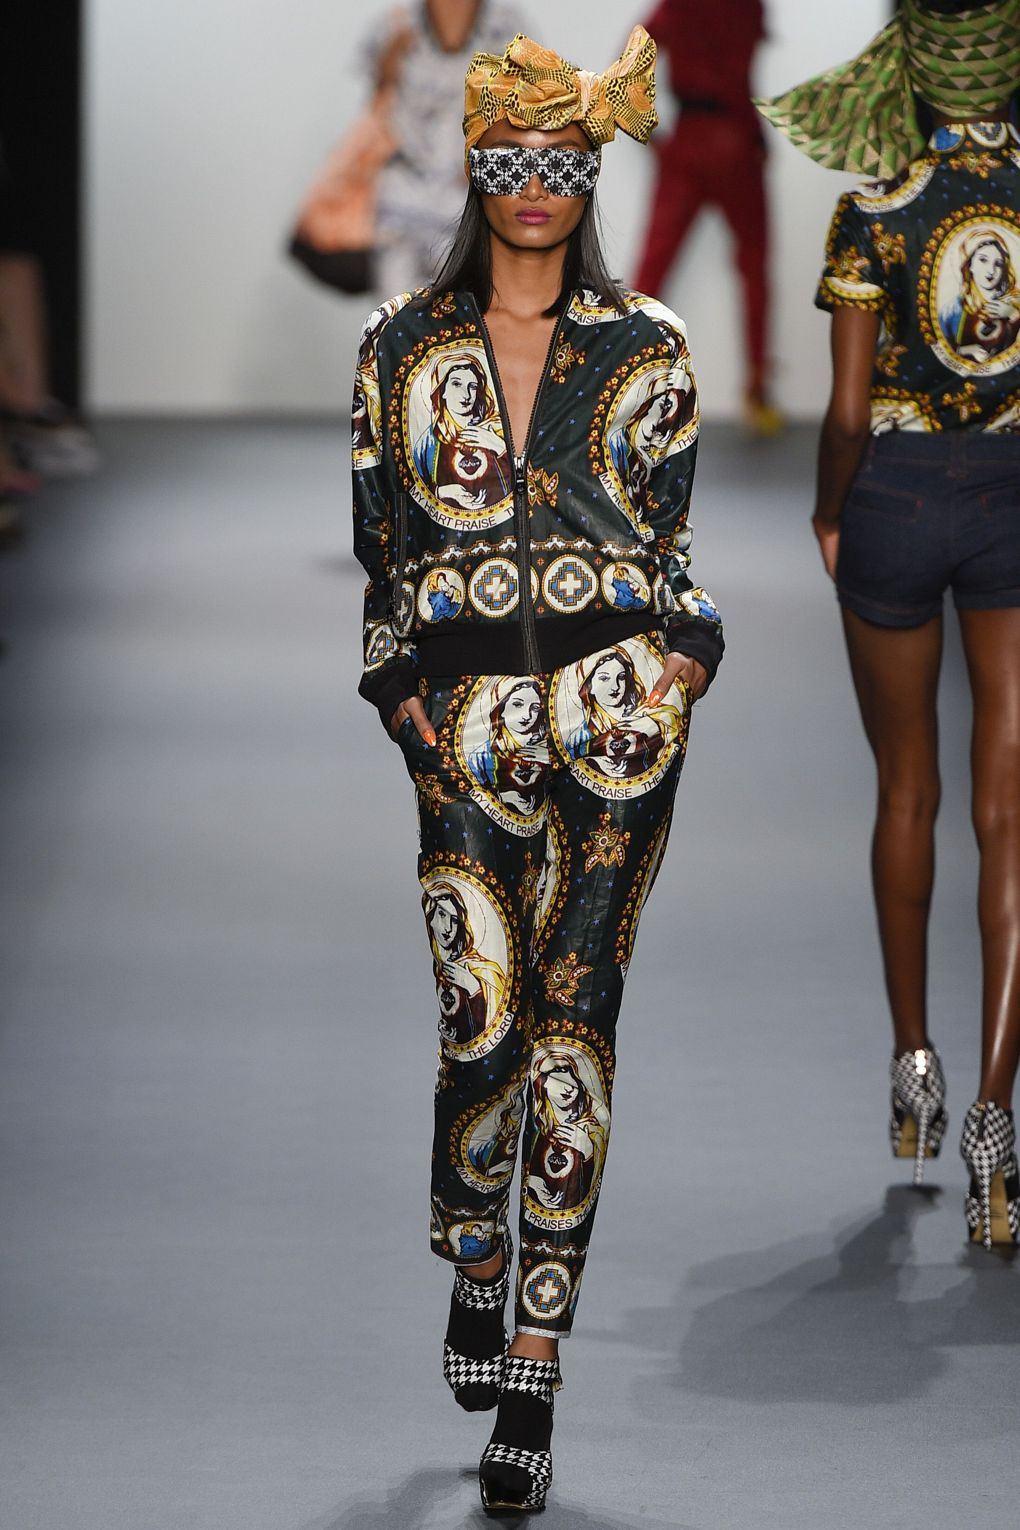 fashion-week-xuly-be%cc%88t-xuly-be%cc%88t-sprigsummer-2016-ready-to-wear-collection-10